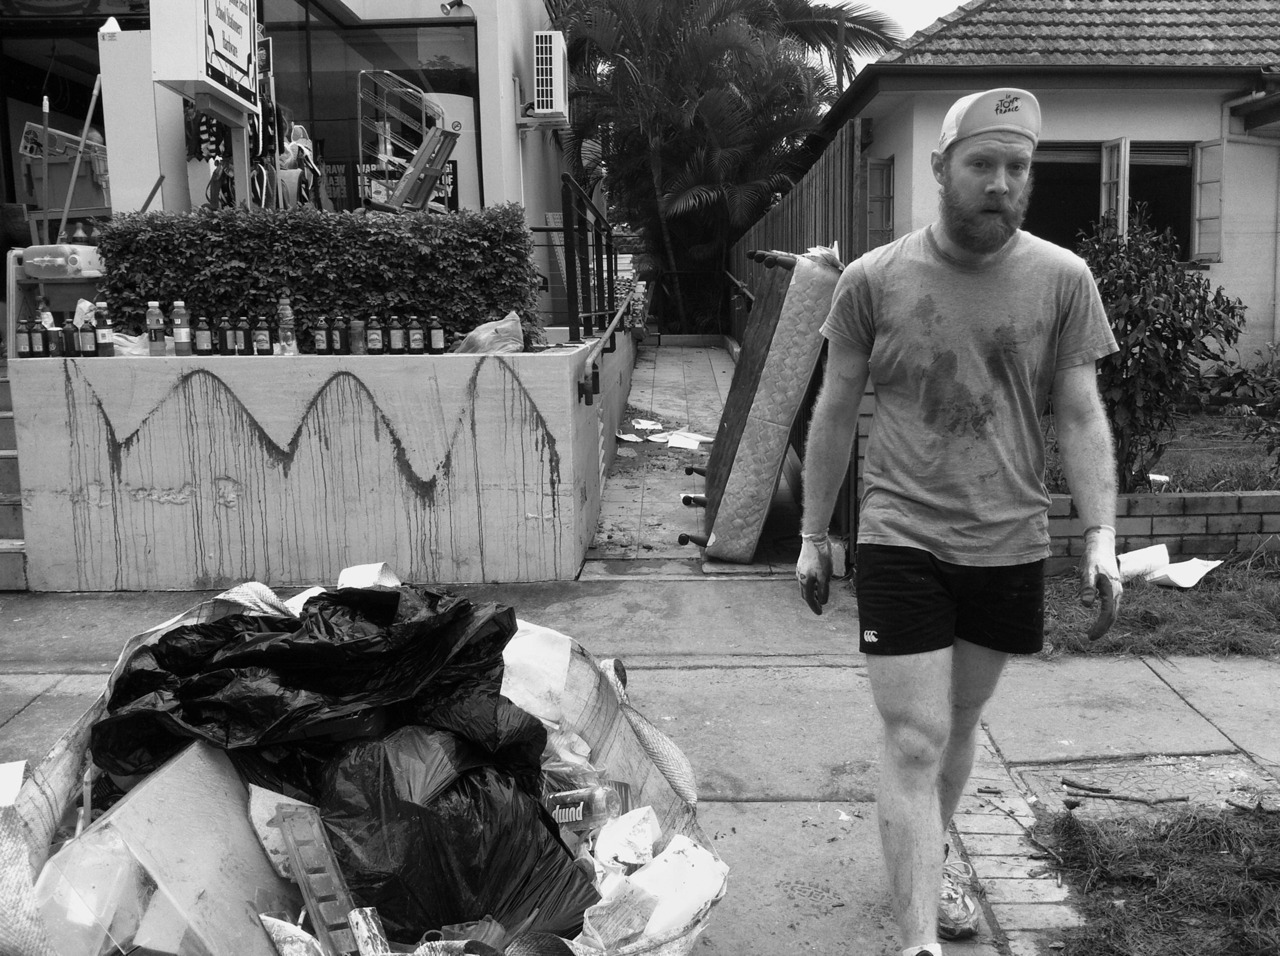 Pictures of volunteers from the Brisbane flood #qldfloods #bneflood If you can please donate to the recovery effort.